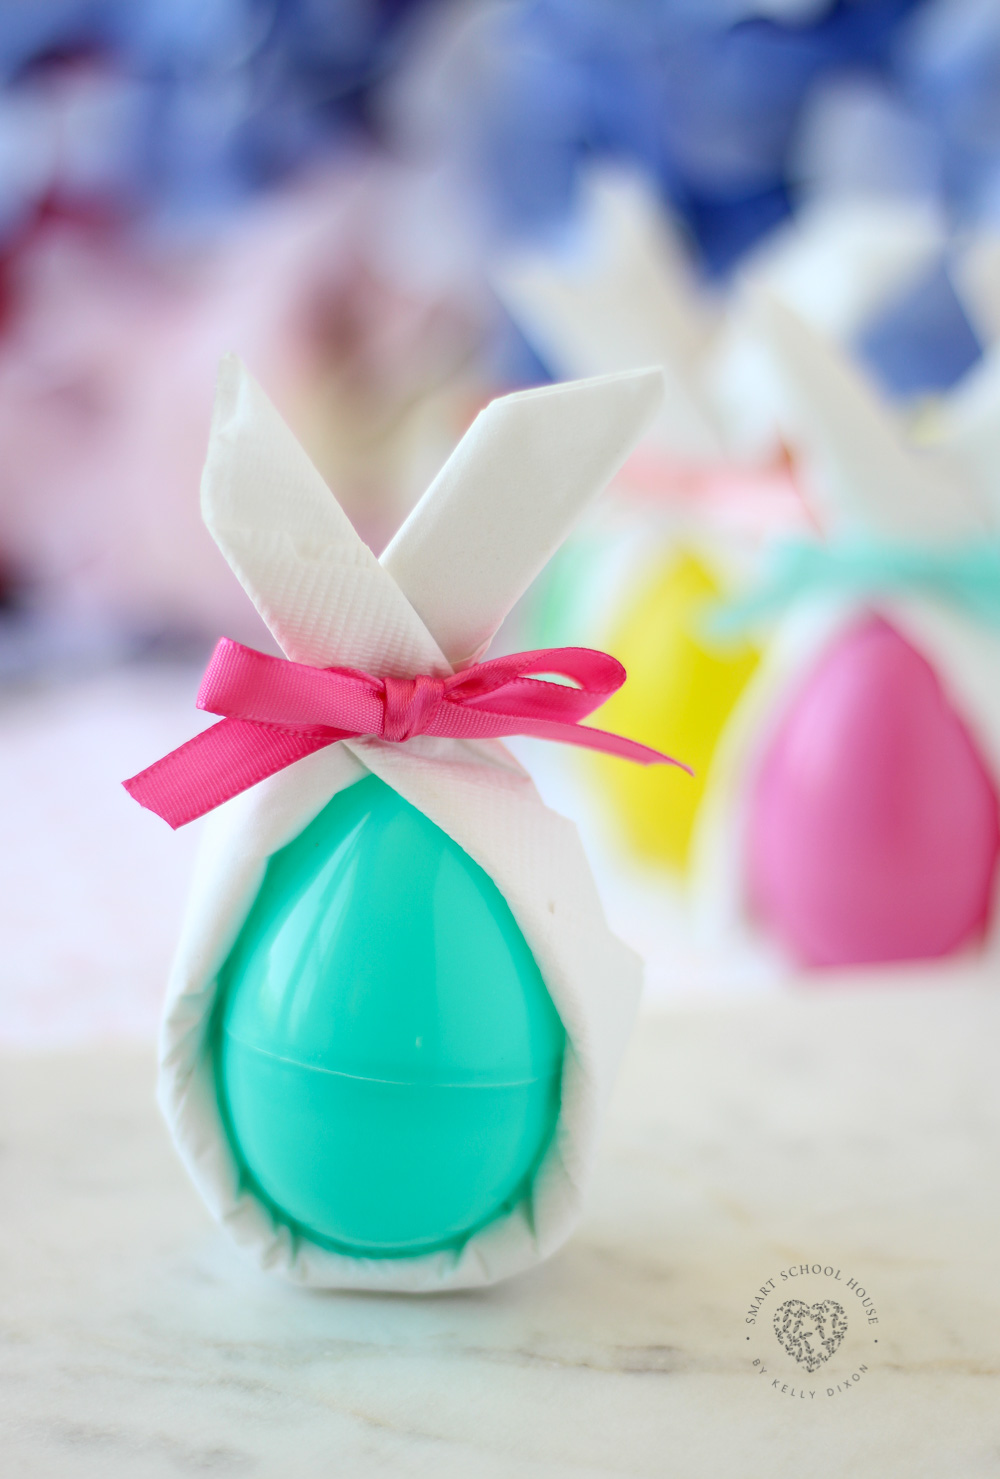 Use napkins and an egg to make a cute Easter bunny, great for Easter dinner! #Easter #EasterEggs #DecoratingEasterEggs #DIYEasterDecor #EasterCraft